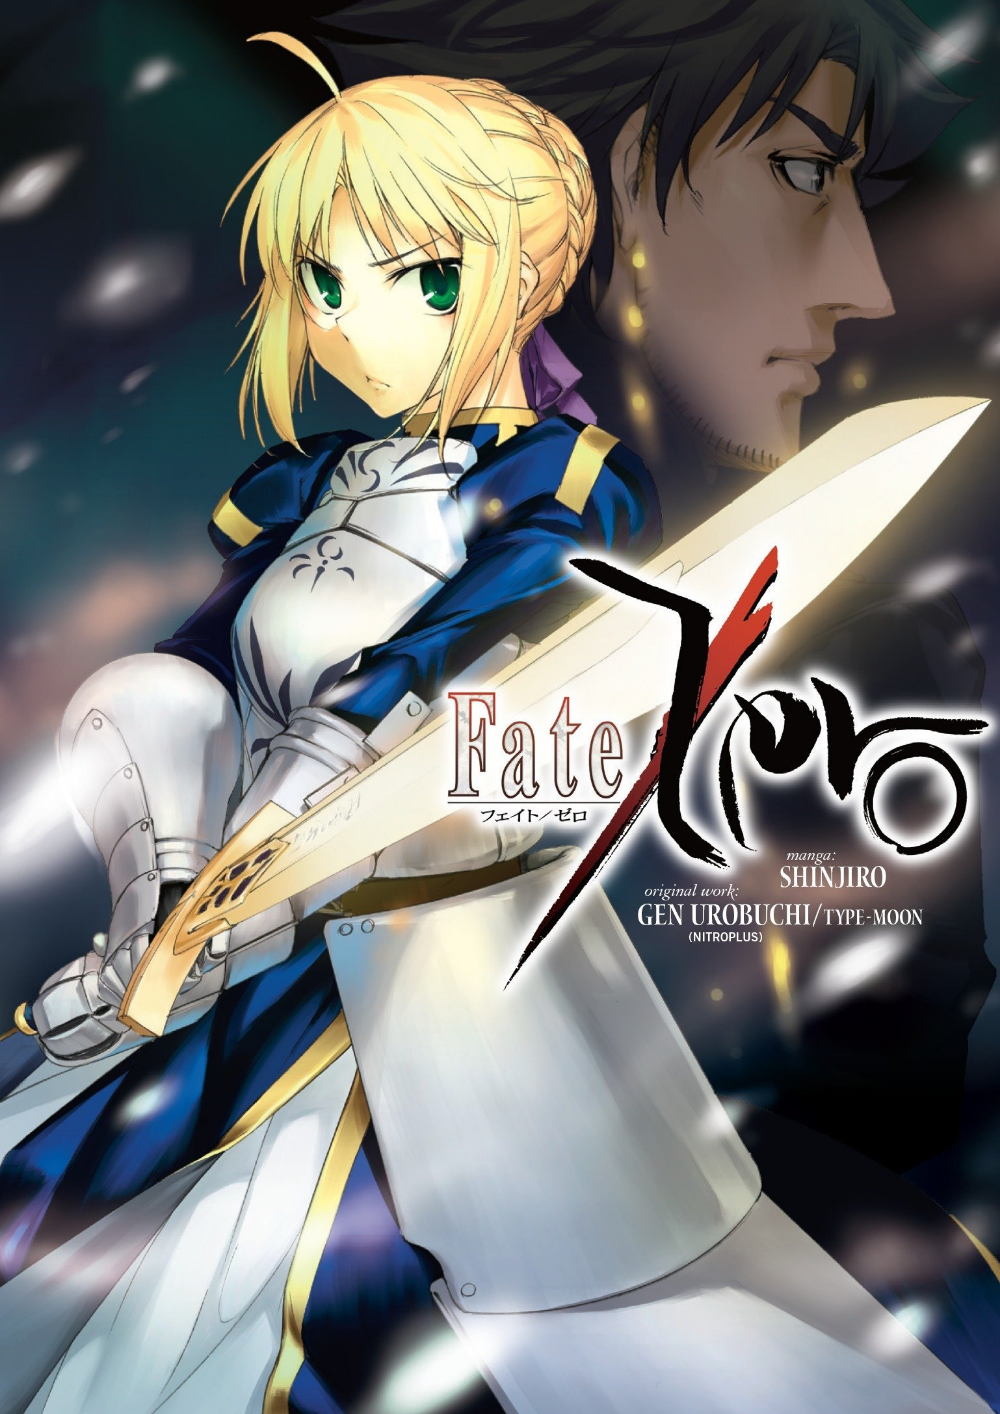 Fate/Zero Volume 1 (9781616559199) Gen Urobuchi, Type